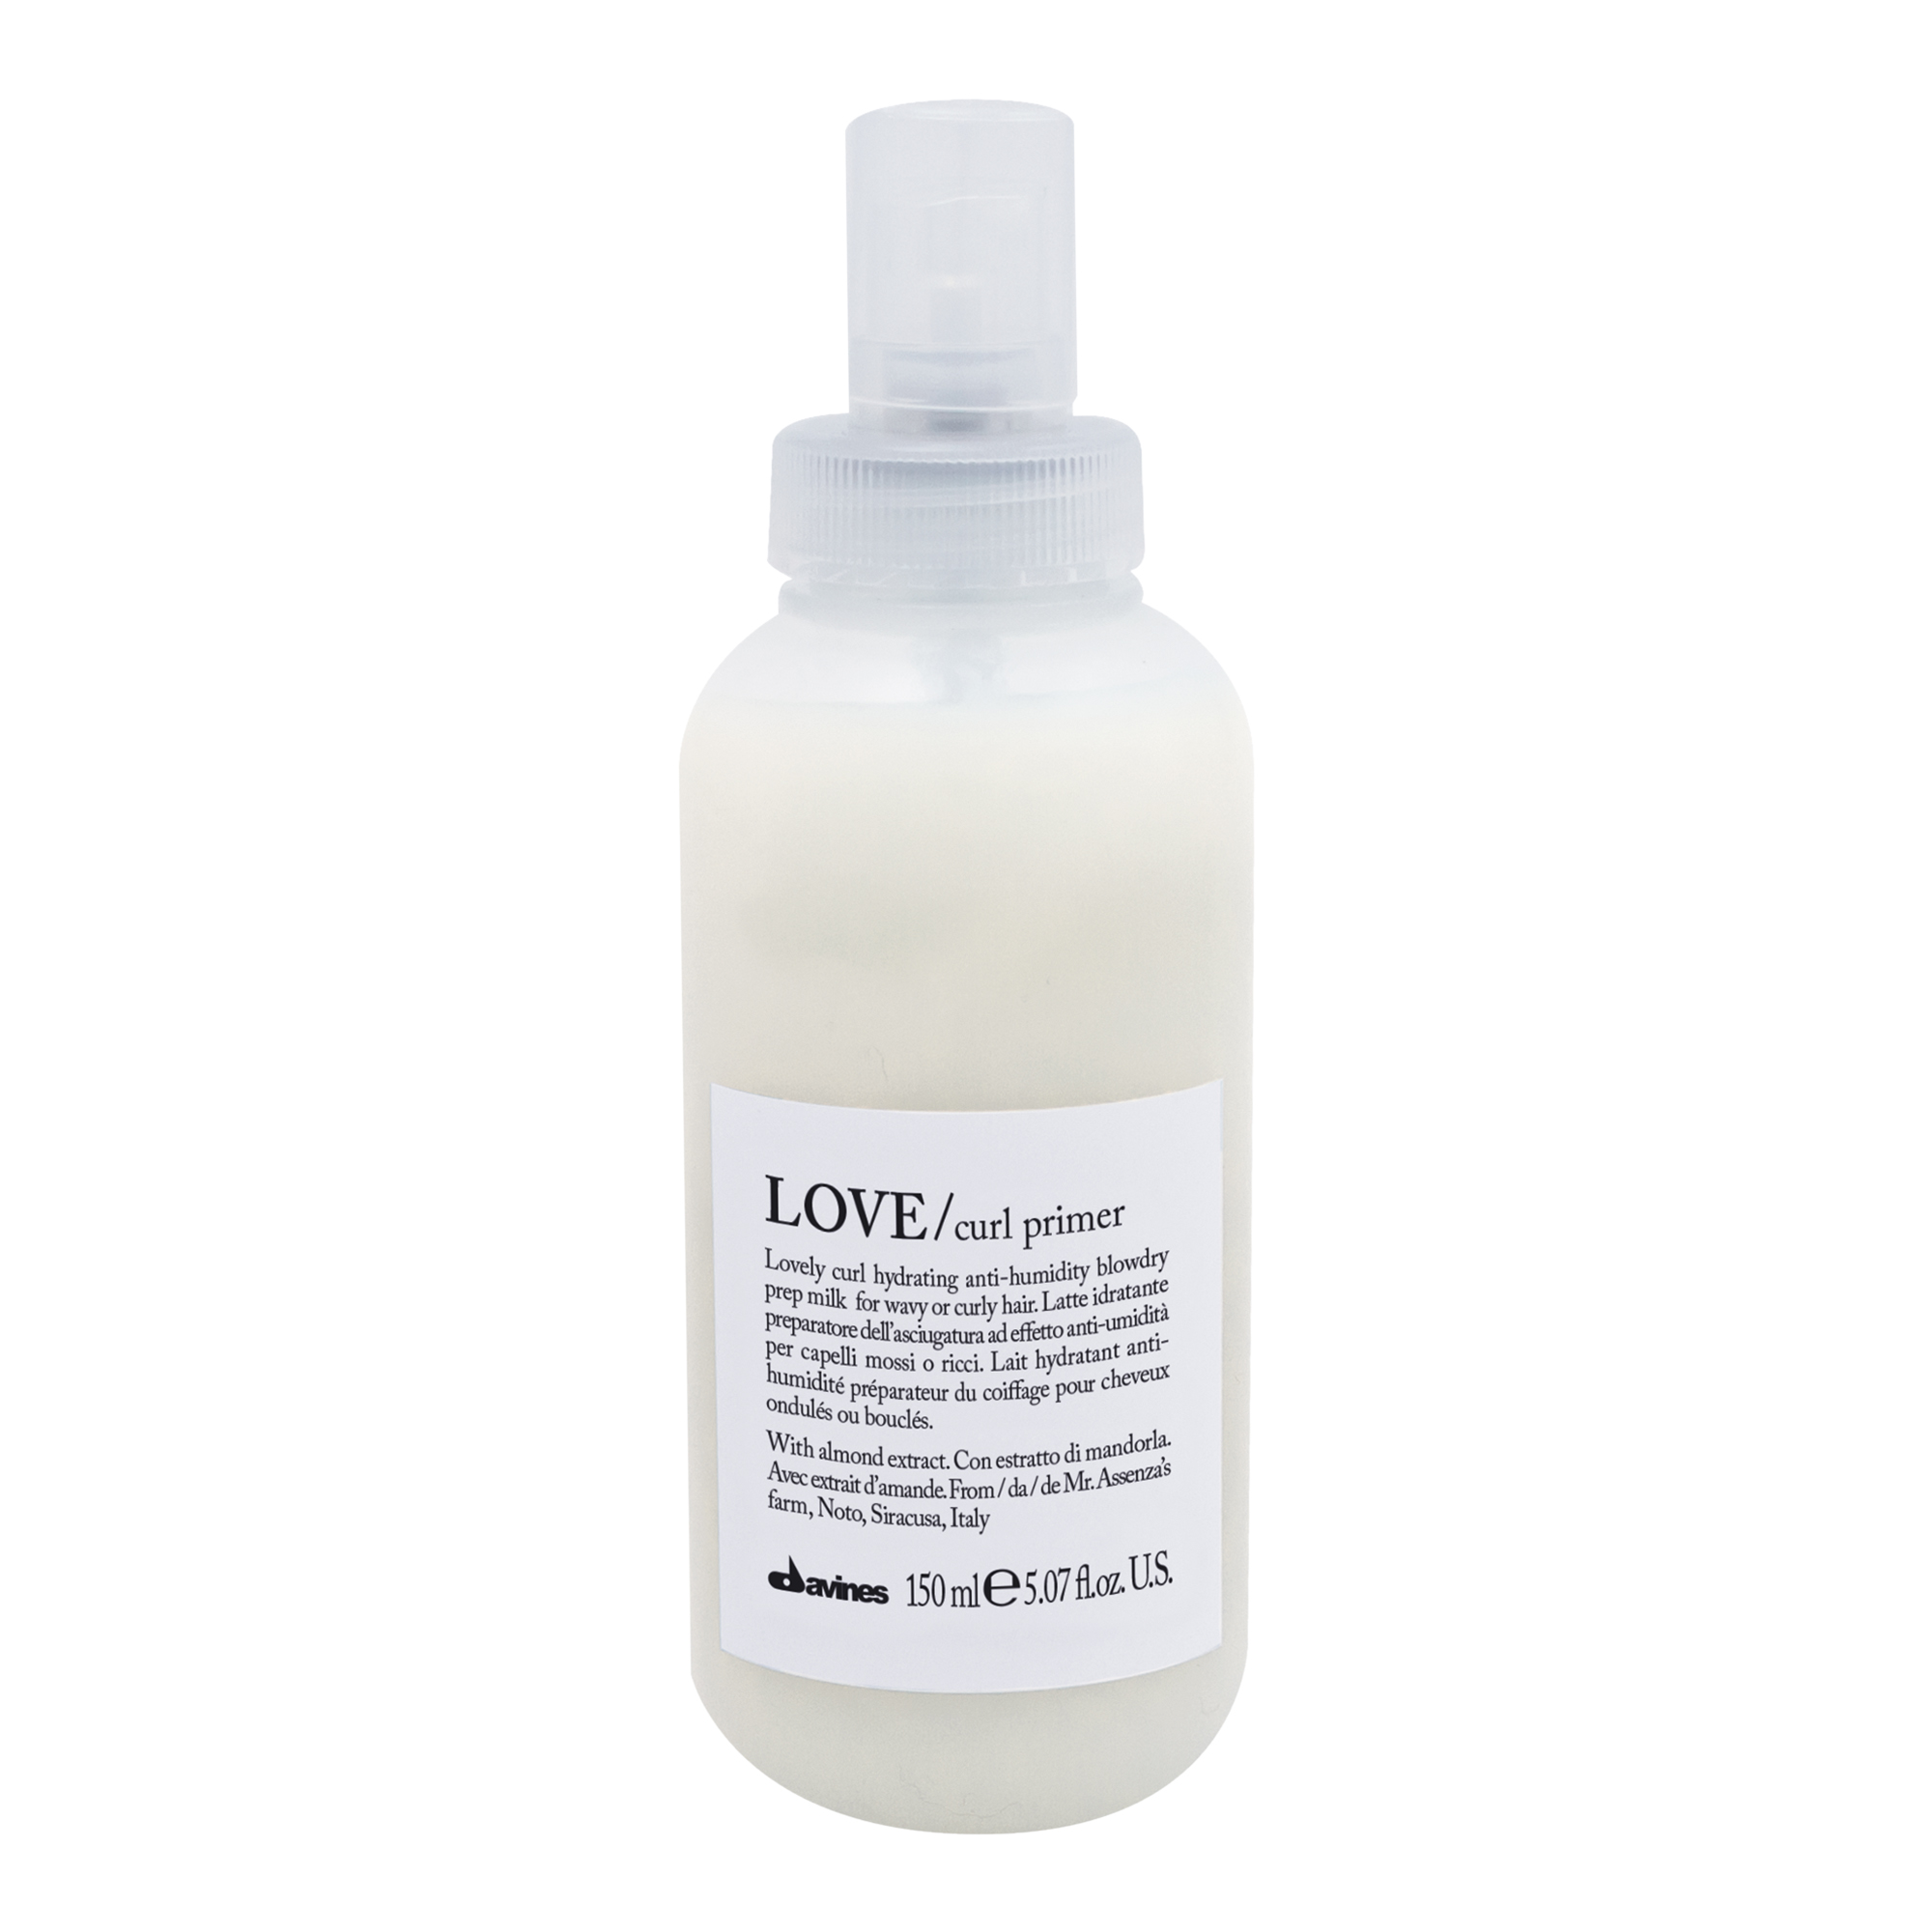 Davines LOVE/curl primer Праймер для усиления завитка (150 ml) 75533